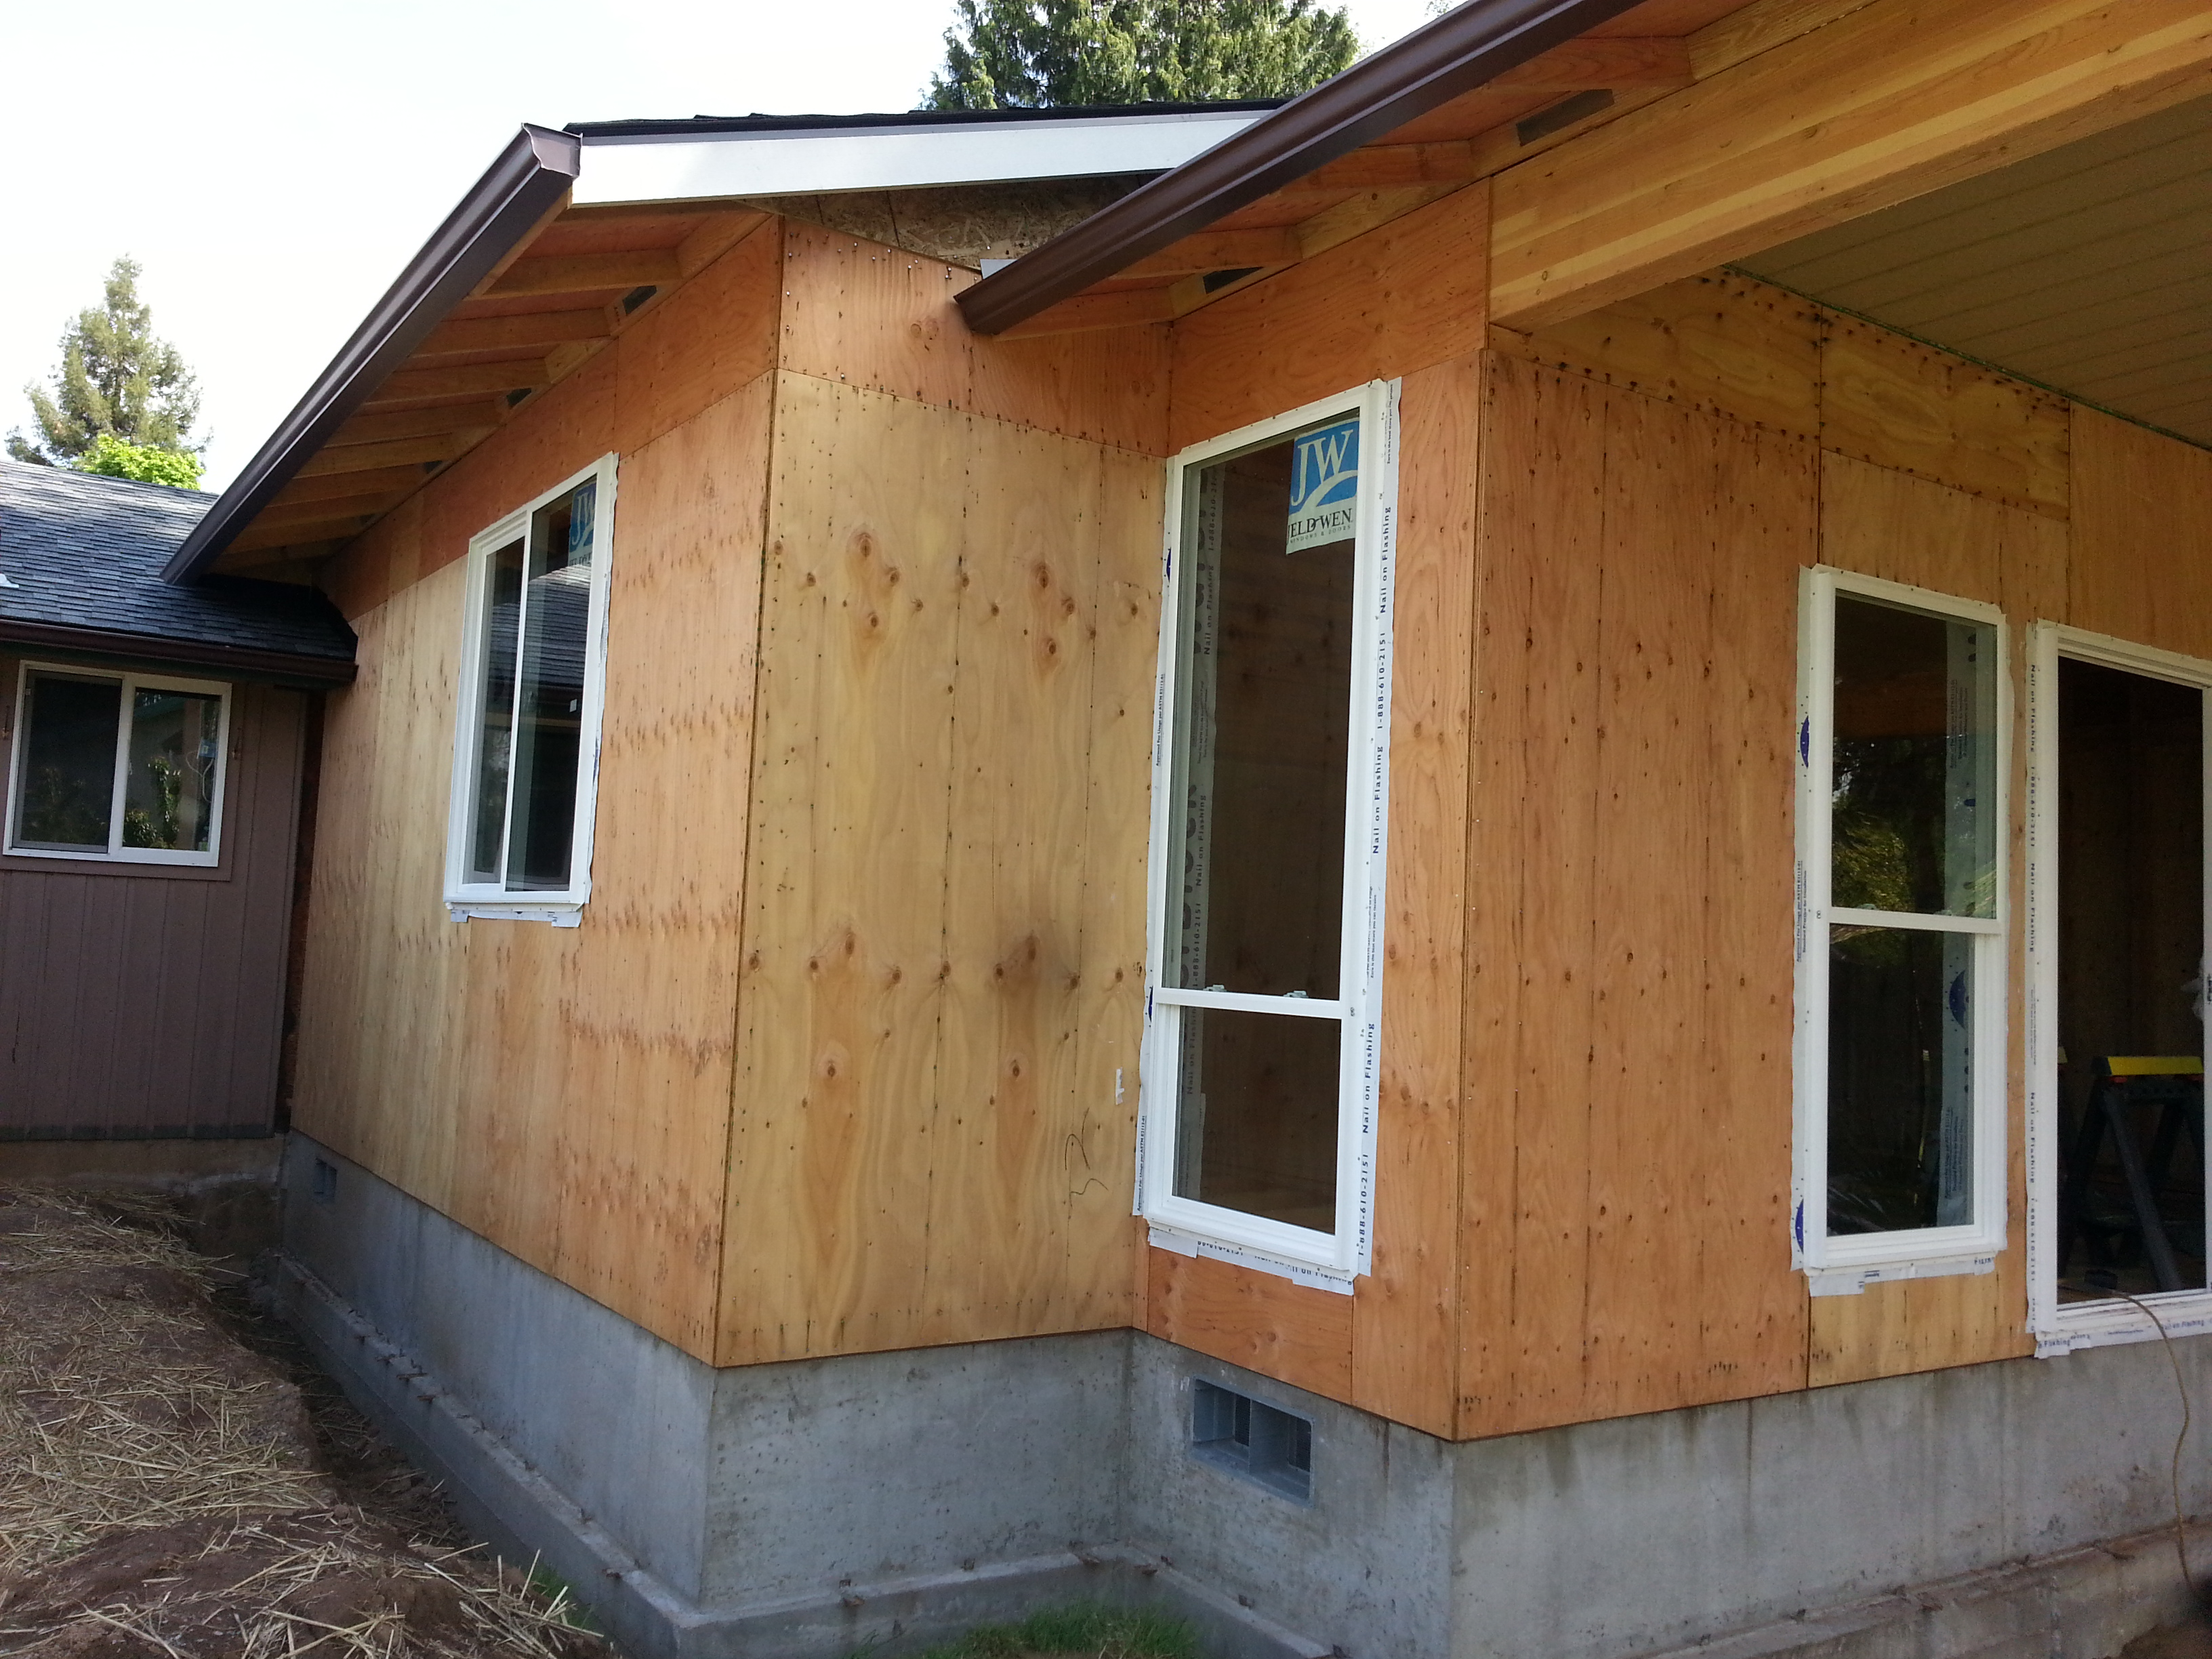 Russ Construction & Remodeling LLC image 3